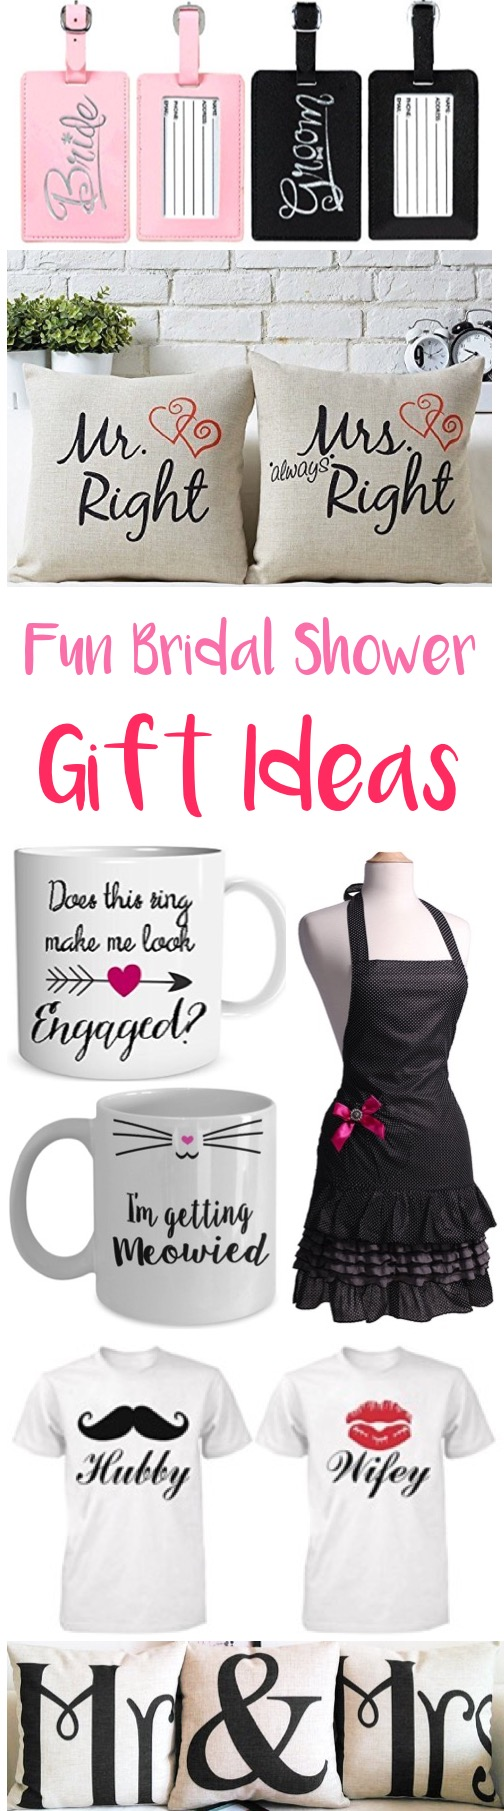 Perfect Groom Bridal Shower Gifts Miss Out On Get All Latest New Frugal Girls Crafts More Right Bridal Shower Gifts Frugal Bridal Shower Gifts From Mor Dog Lovers bridal shower Bridal Shower Gifts